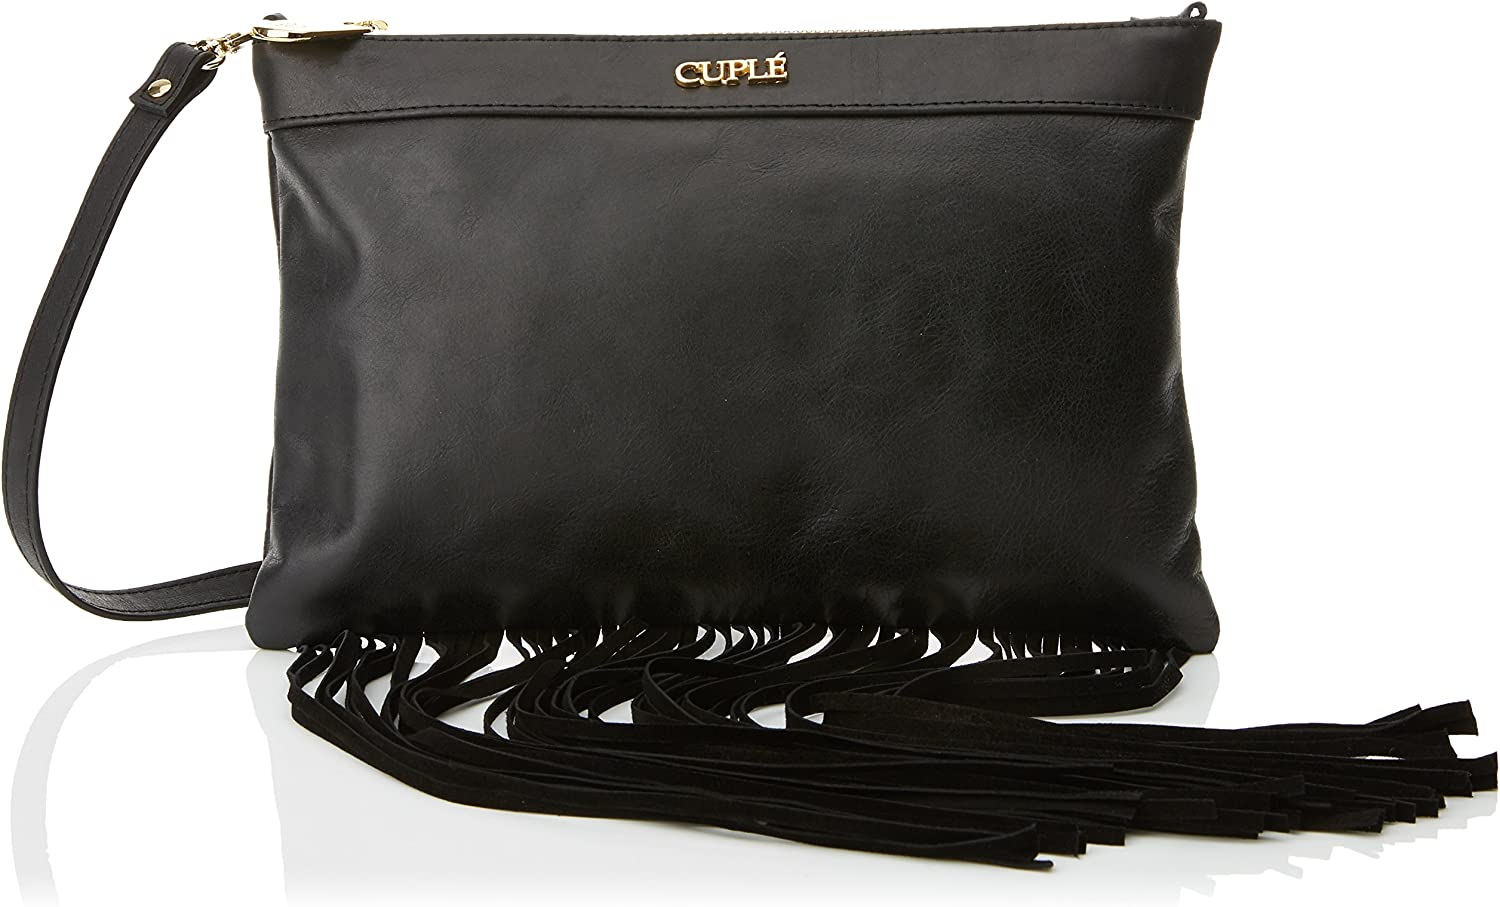 CUPLE 103095, Women's Messenger Bag, black, 2x19x28 cm (W x H L)